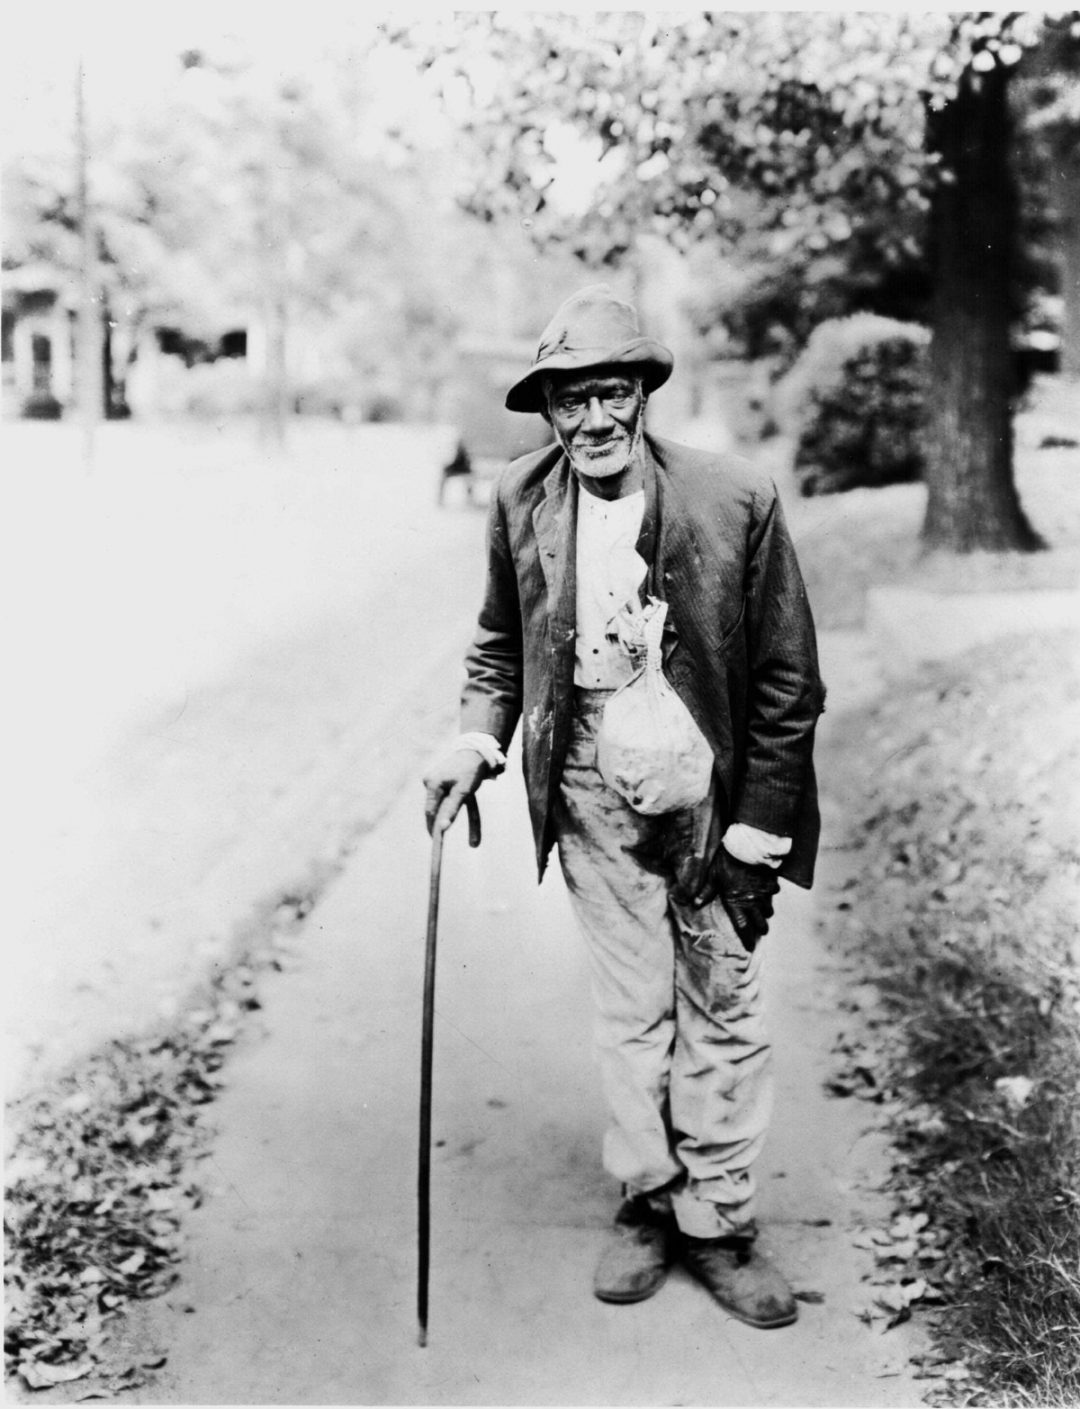 Jim Rumph Early 1900s SC Contributed by Lynda Smith Harris